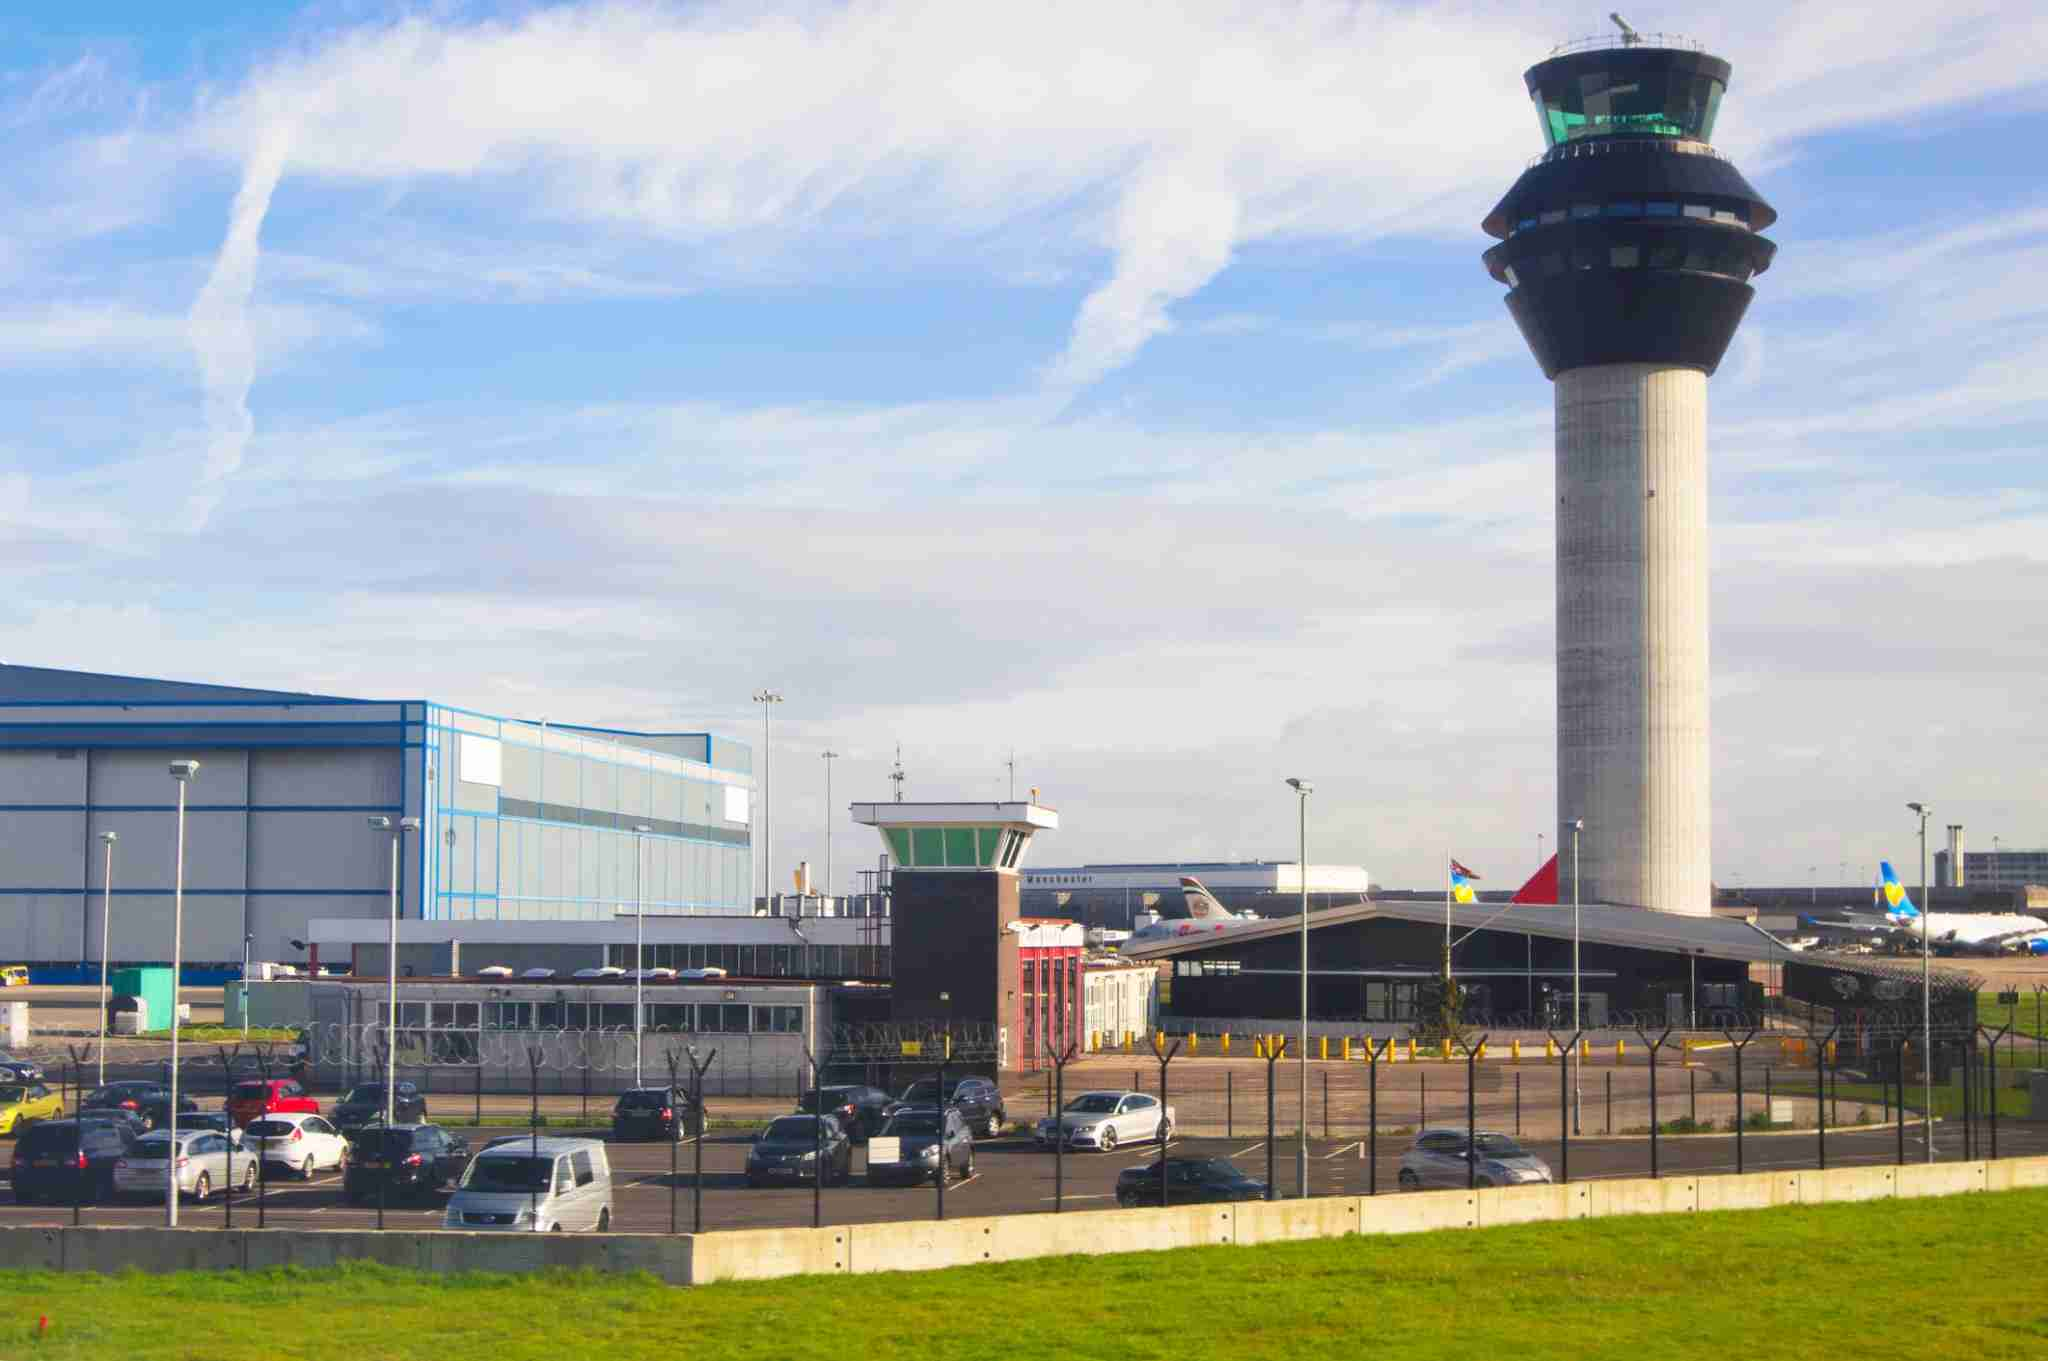 Control tower and terminal buildings at Manchester International Airport, UK. (Photo by Mark Williamson/Getty Images)